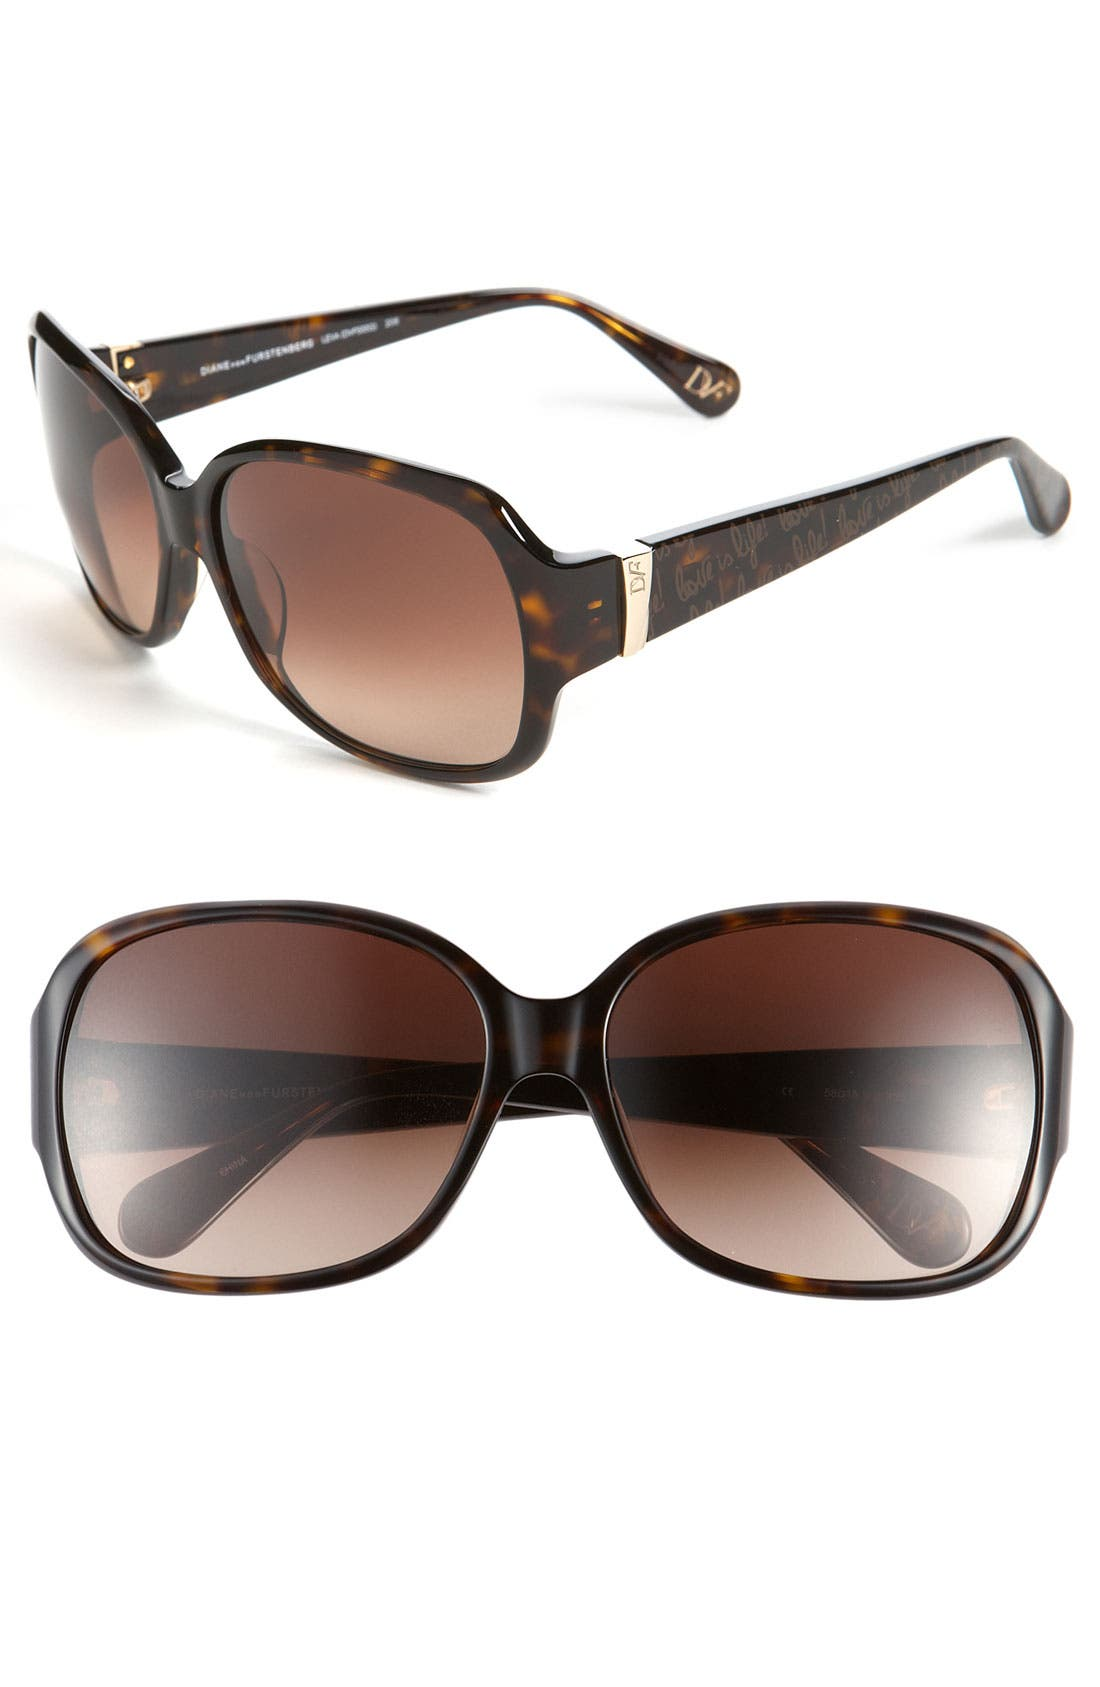 Alternate Image 1 Selected - Diane von Furstenberg 'Classic' Sunglasses